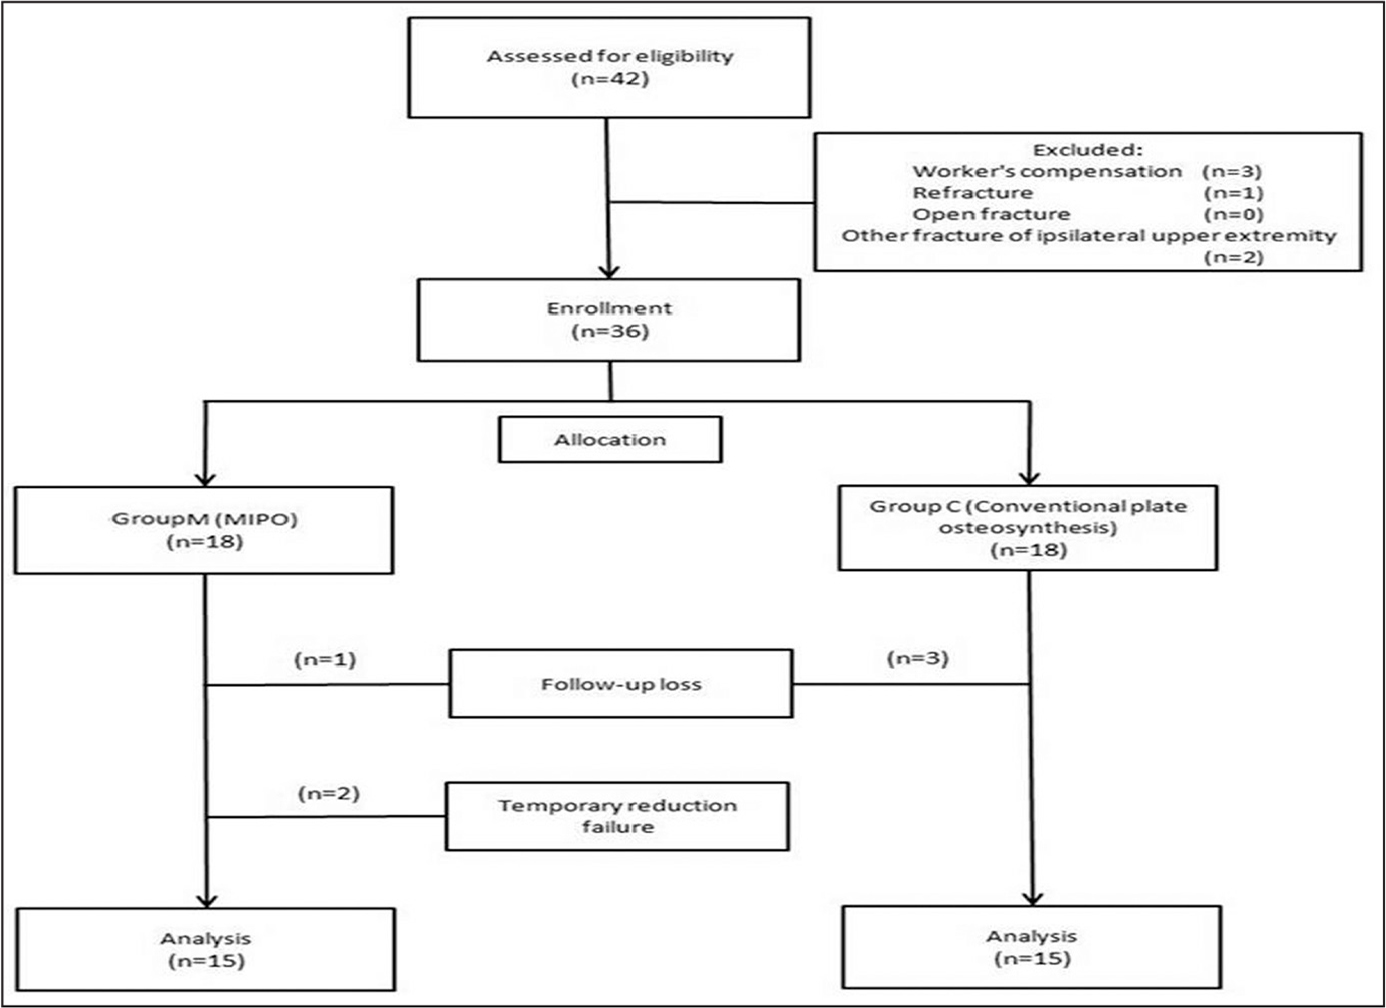 A Comparison Of Clinical And Radiological Outcomes Of Minimally